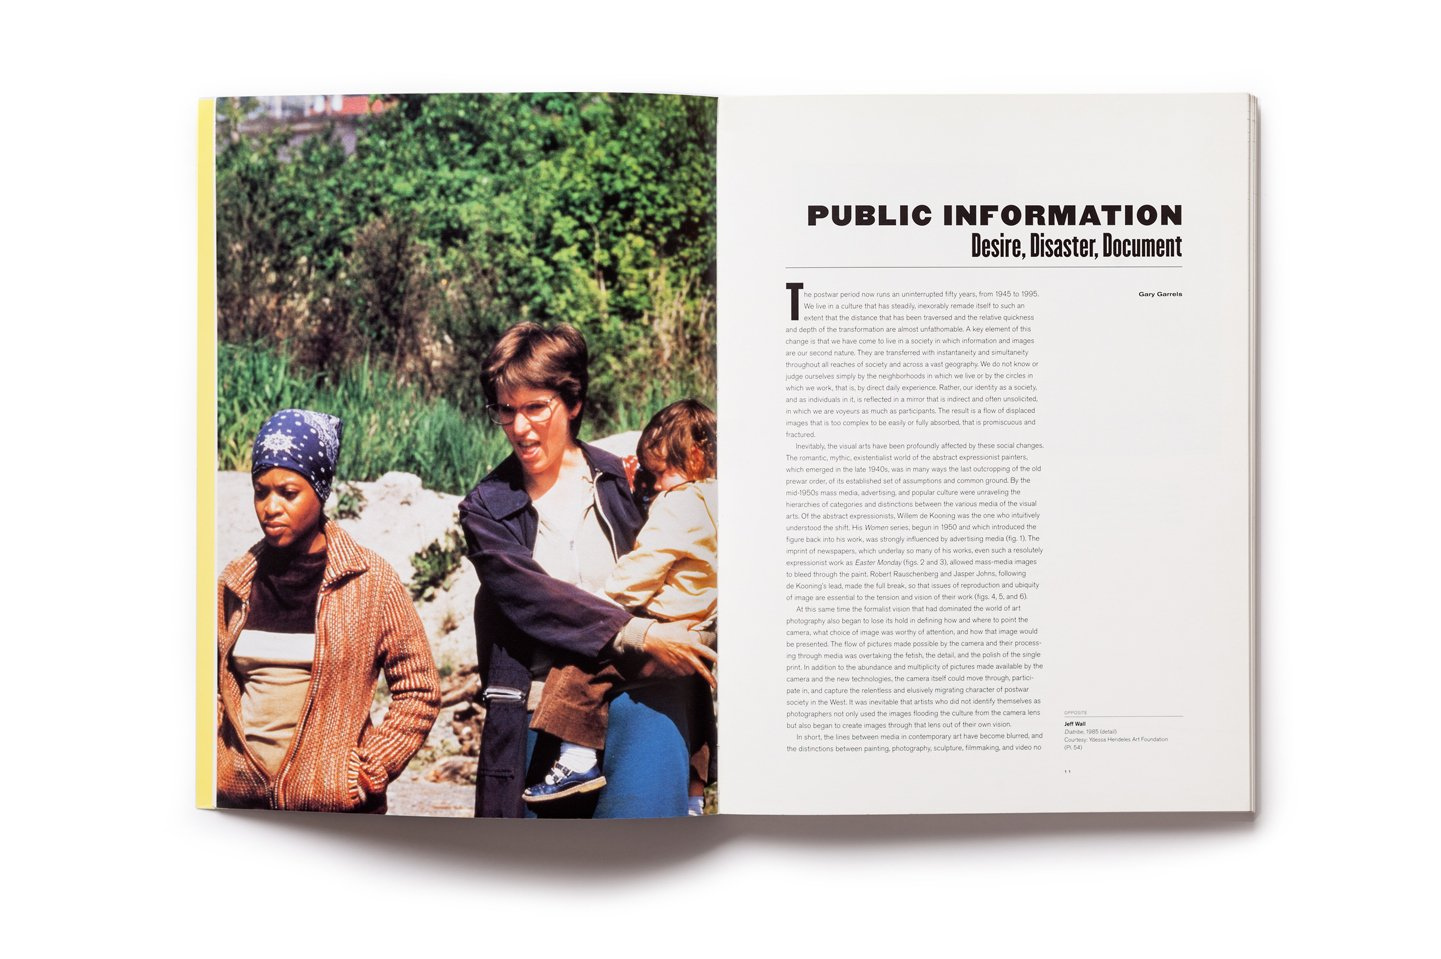 Public Information: Desire, Disaster, Document, pp. 10-11